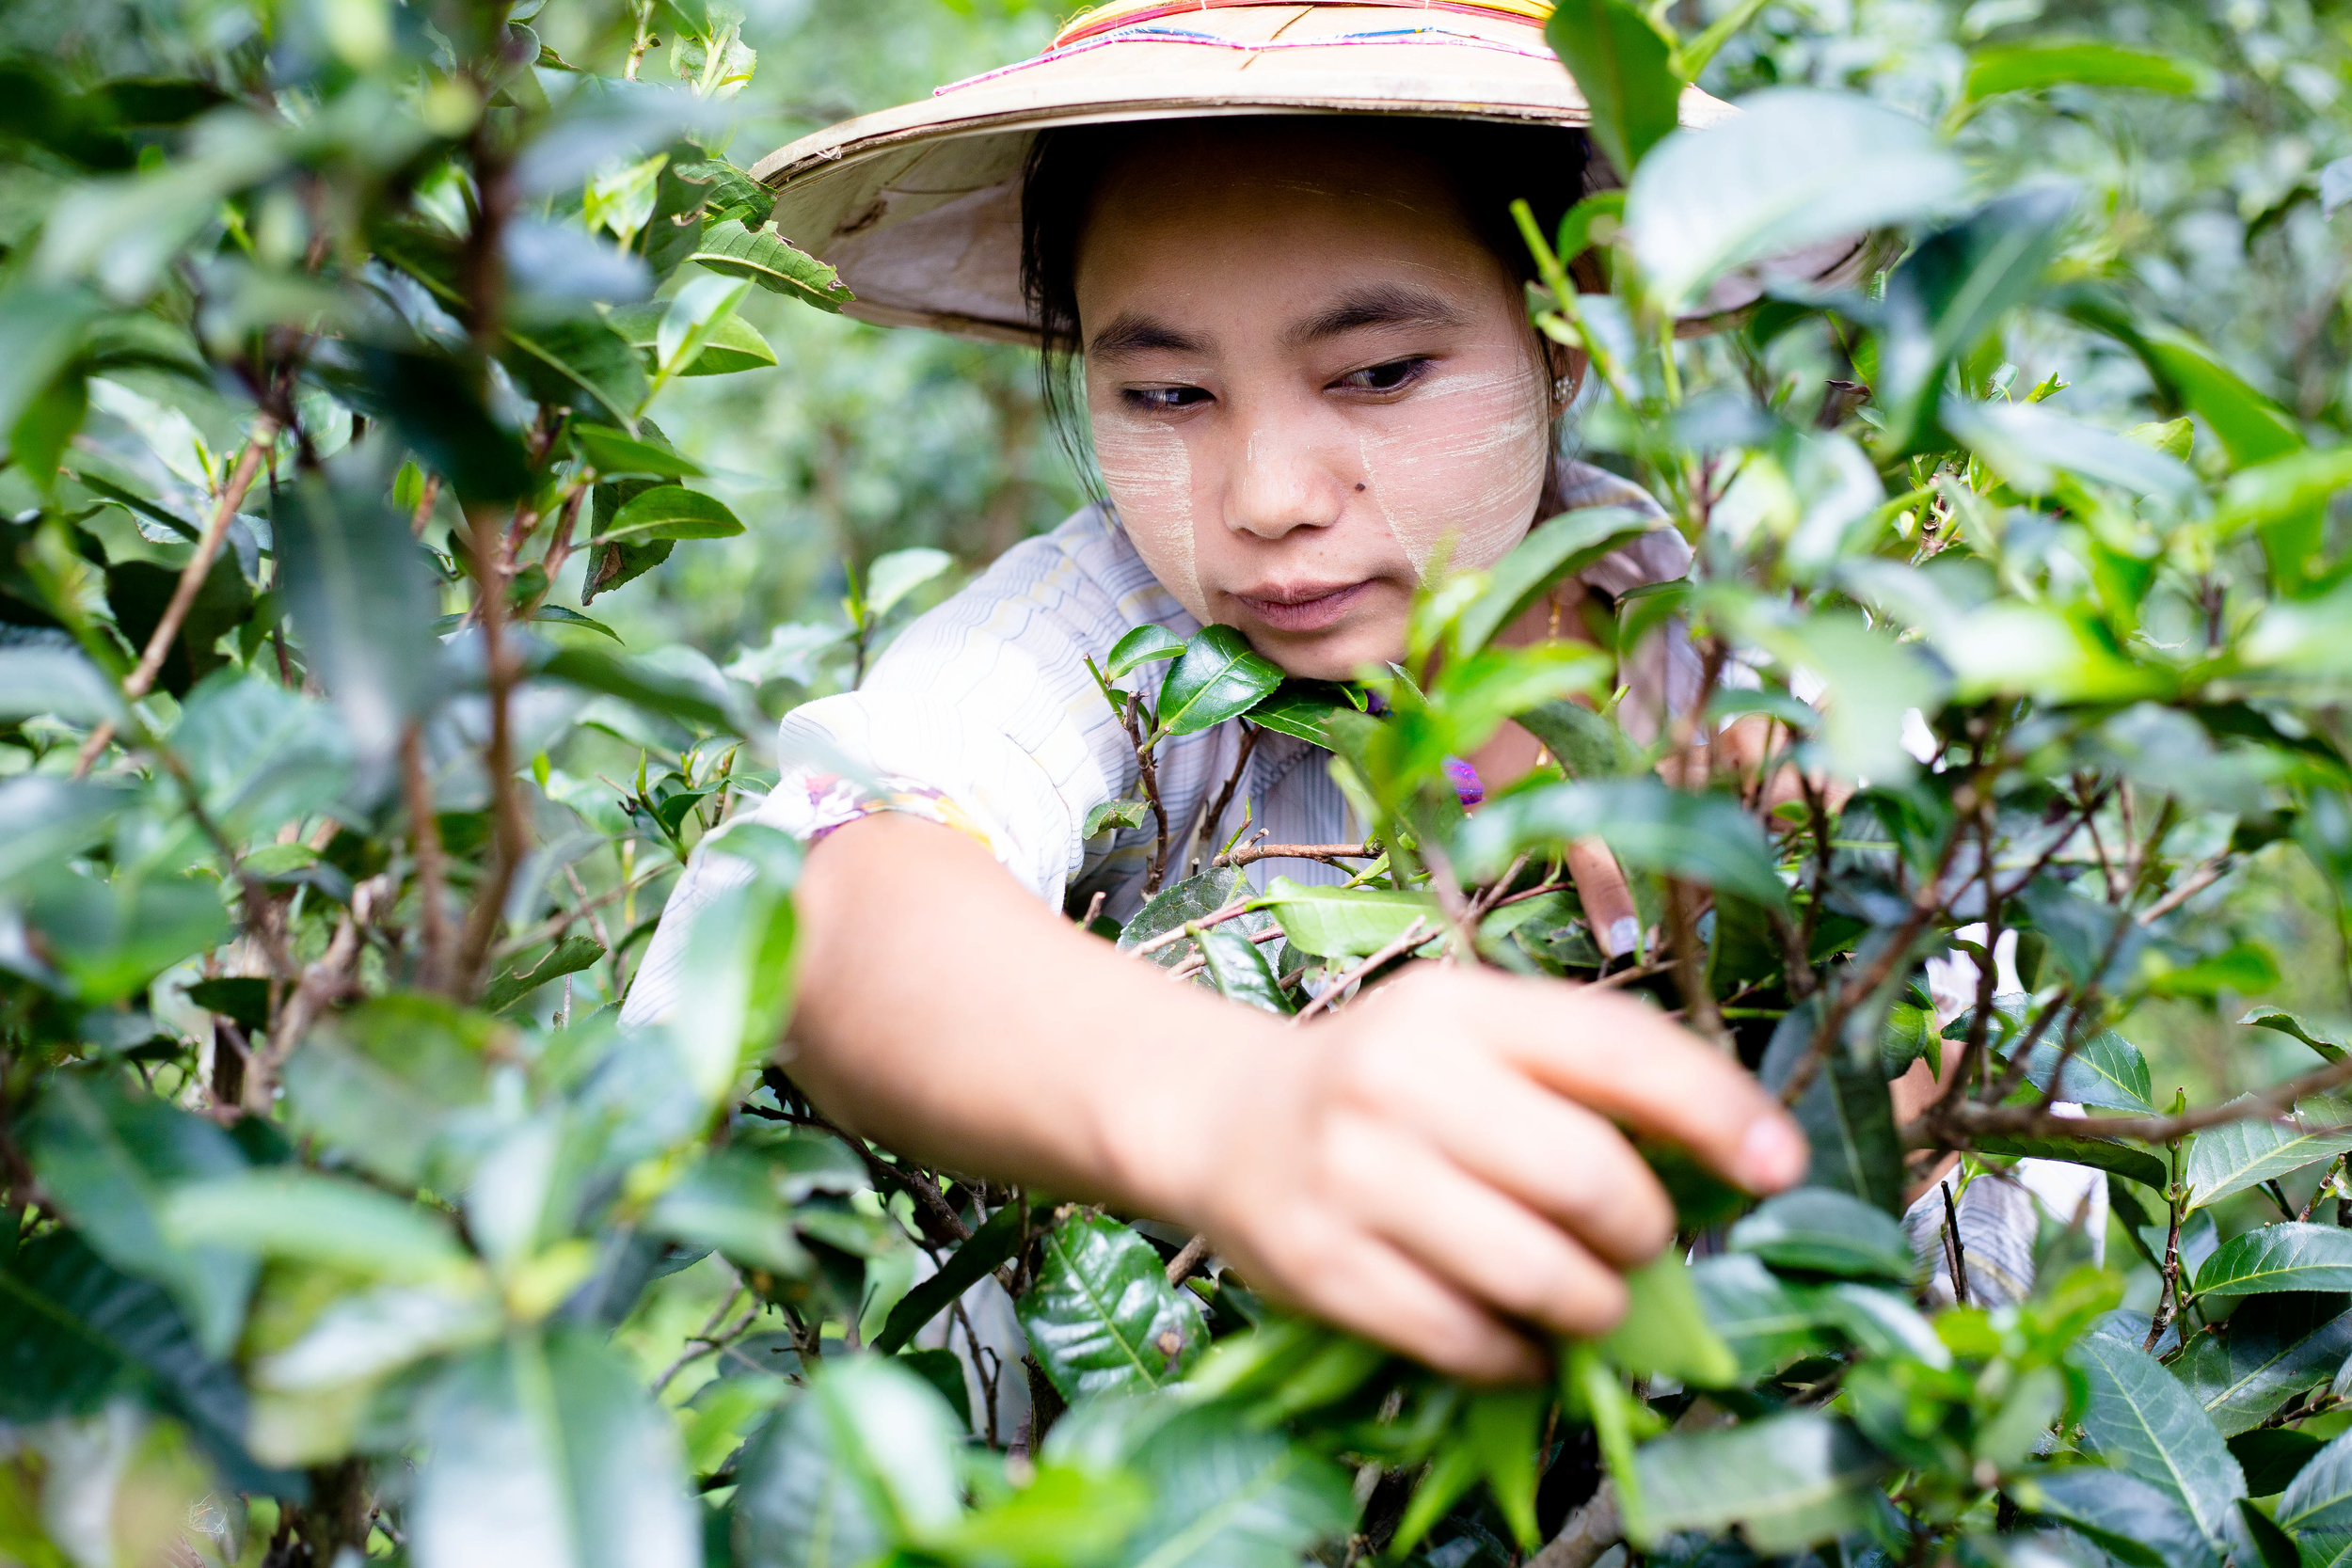 Because of the remote location of the tea plantation, lack of technology and equipment, tea is still being hand picked by labor. Photo by Ann Wang